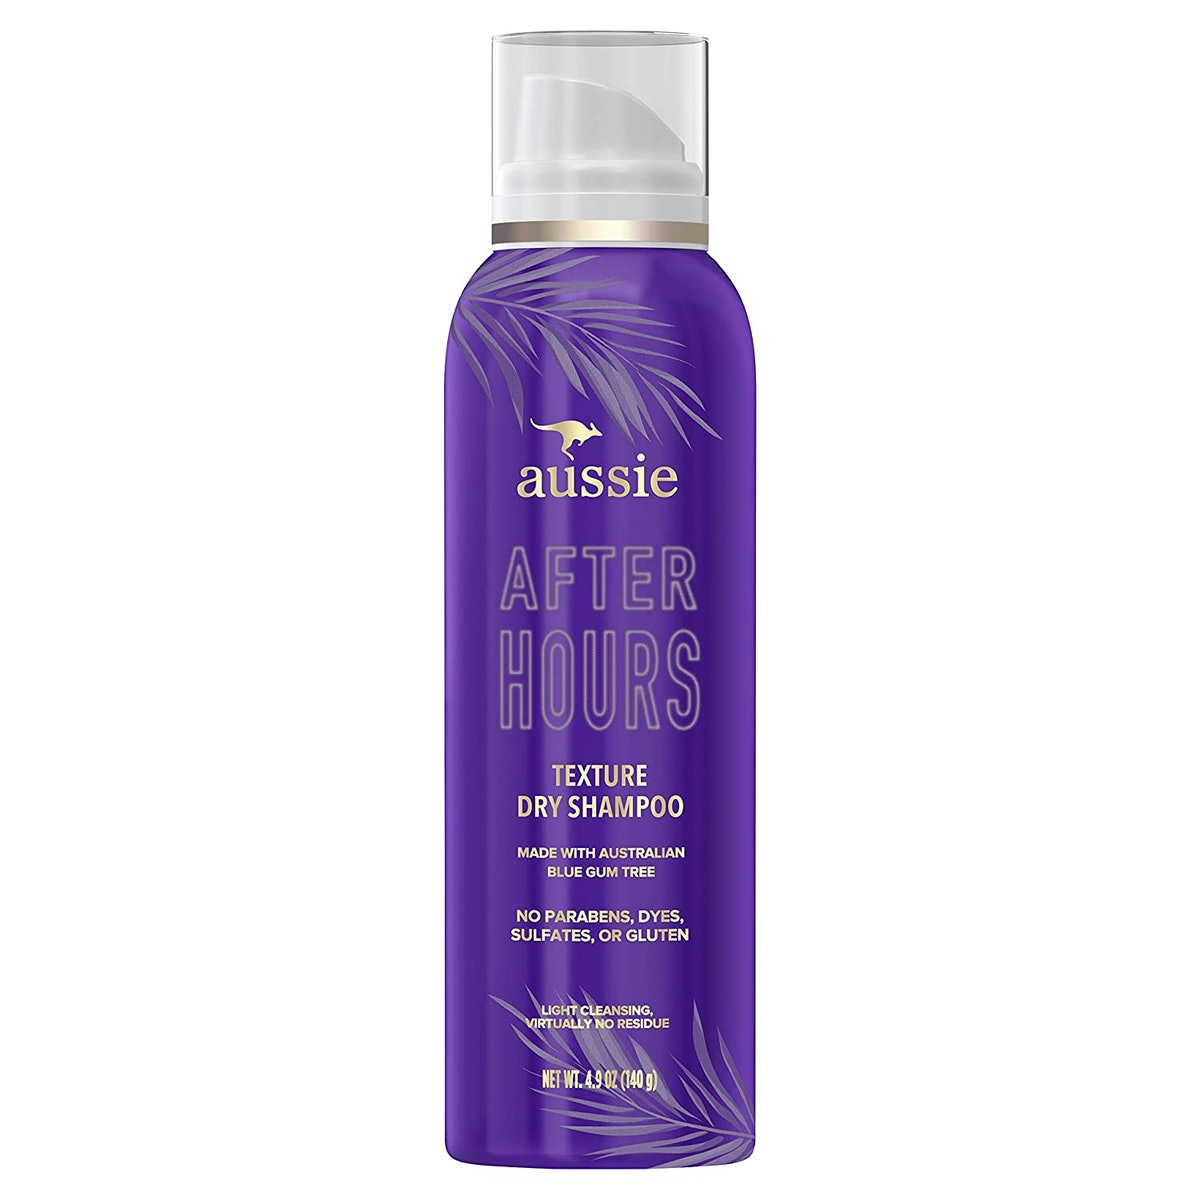 Aussie After Hours Texture Dry Shampoo